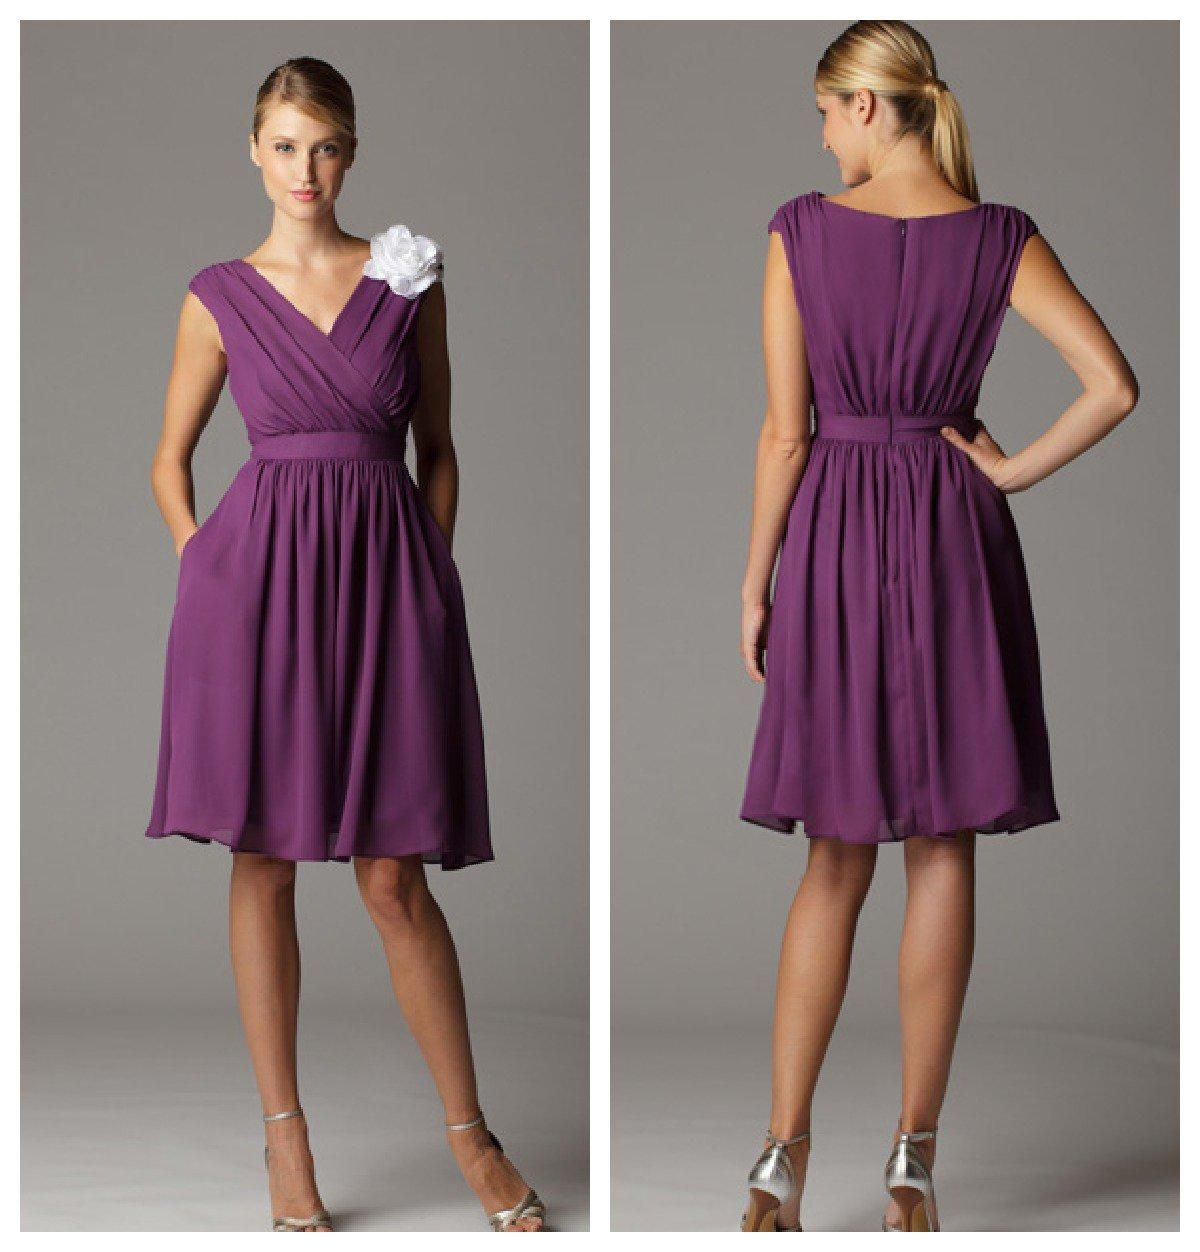 Top selling purple bridesmaid dresses a line sash chiffon knee free shipping 733piecebuy wholesale top selling purple bridesmaid dresses a line ombrellifo Image collections